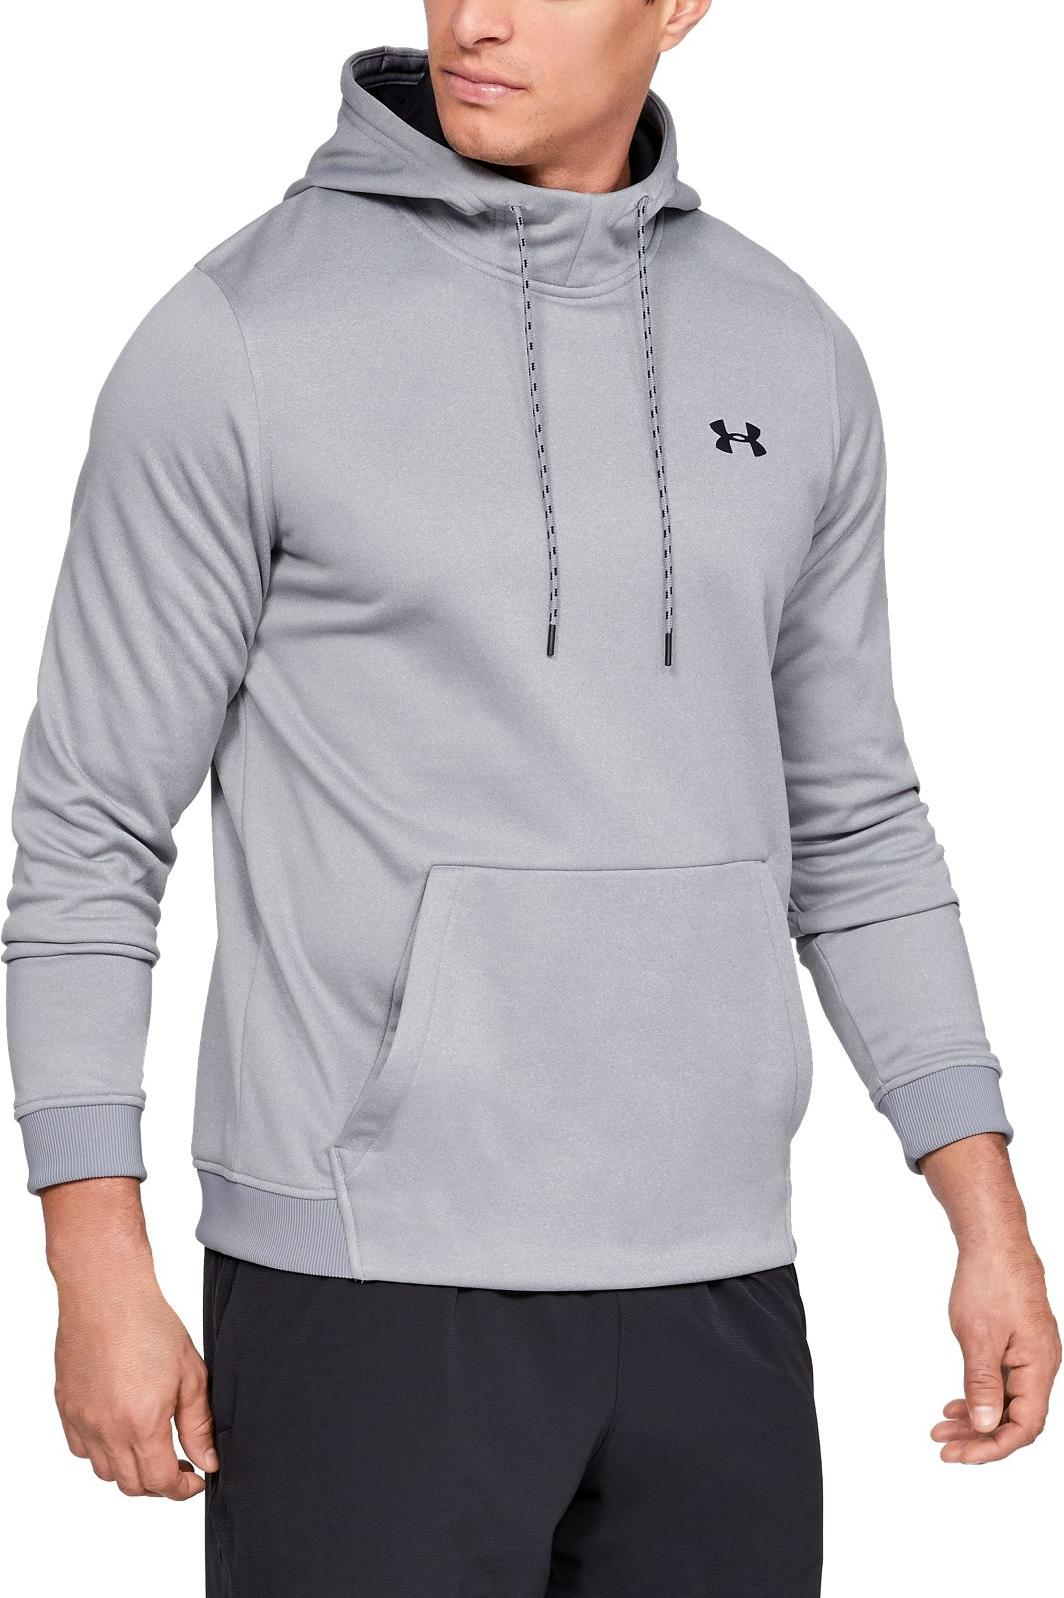 Hooded sweatshirt Under Armour ARMOUR FLEECE PO HOODIE